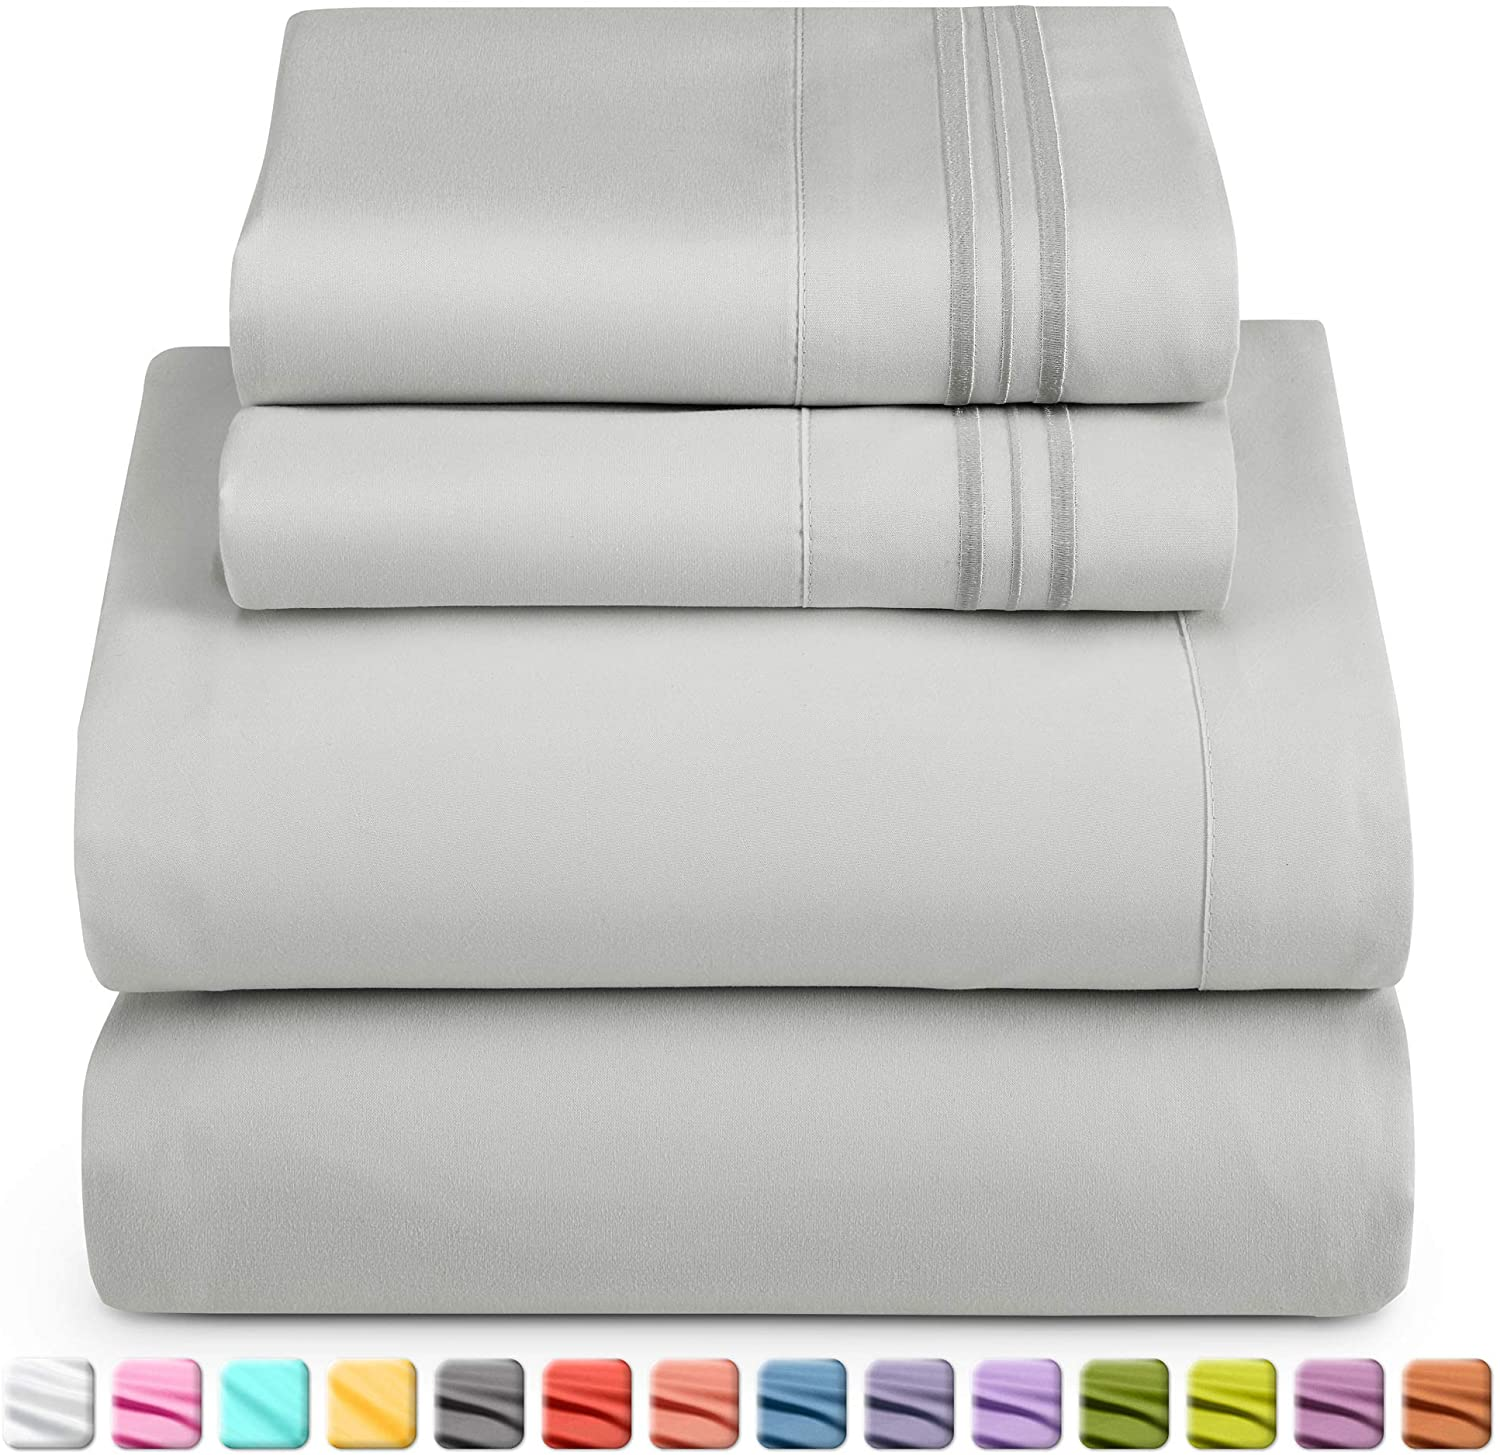 4 Piece Bed Sheet Set Nestl Bedding Soft Sheets Set Wrinkle Free Warranty Included Easy Care 3-Line Design Pillowcases Good Fit Deep Pockets Fitted Sheet Blue Heaven King